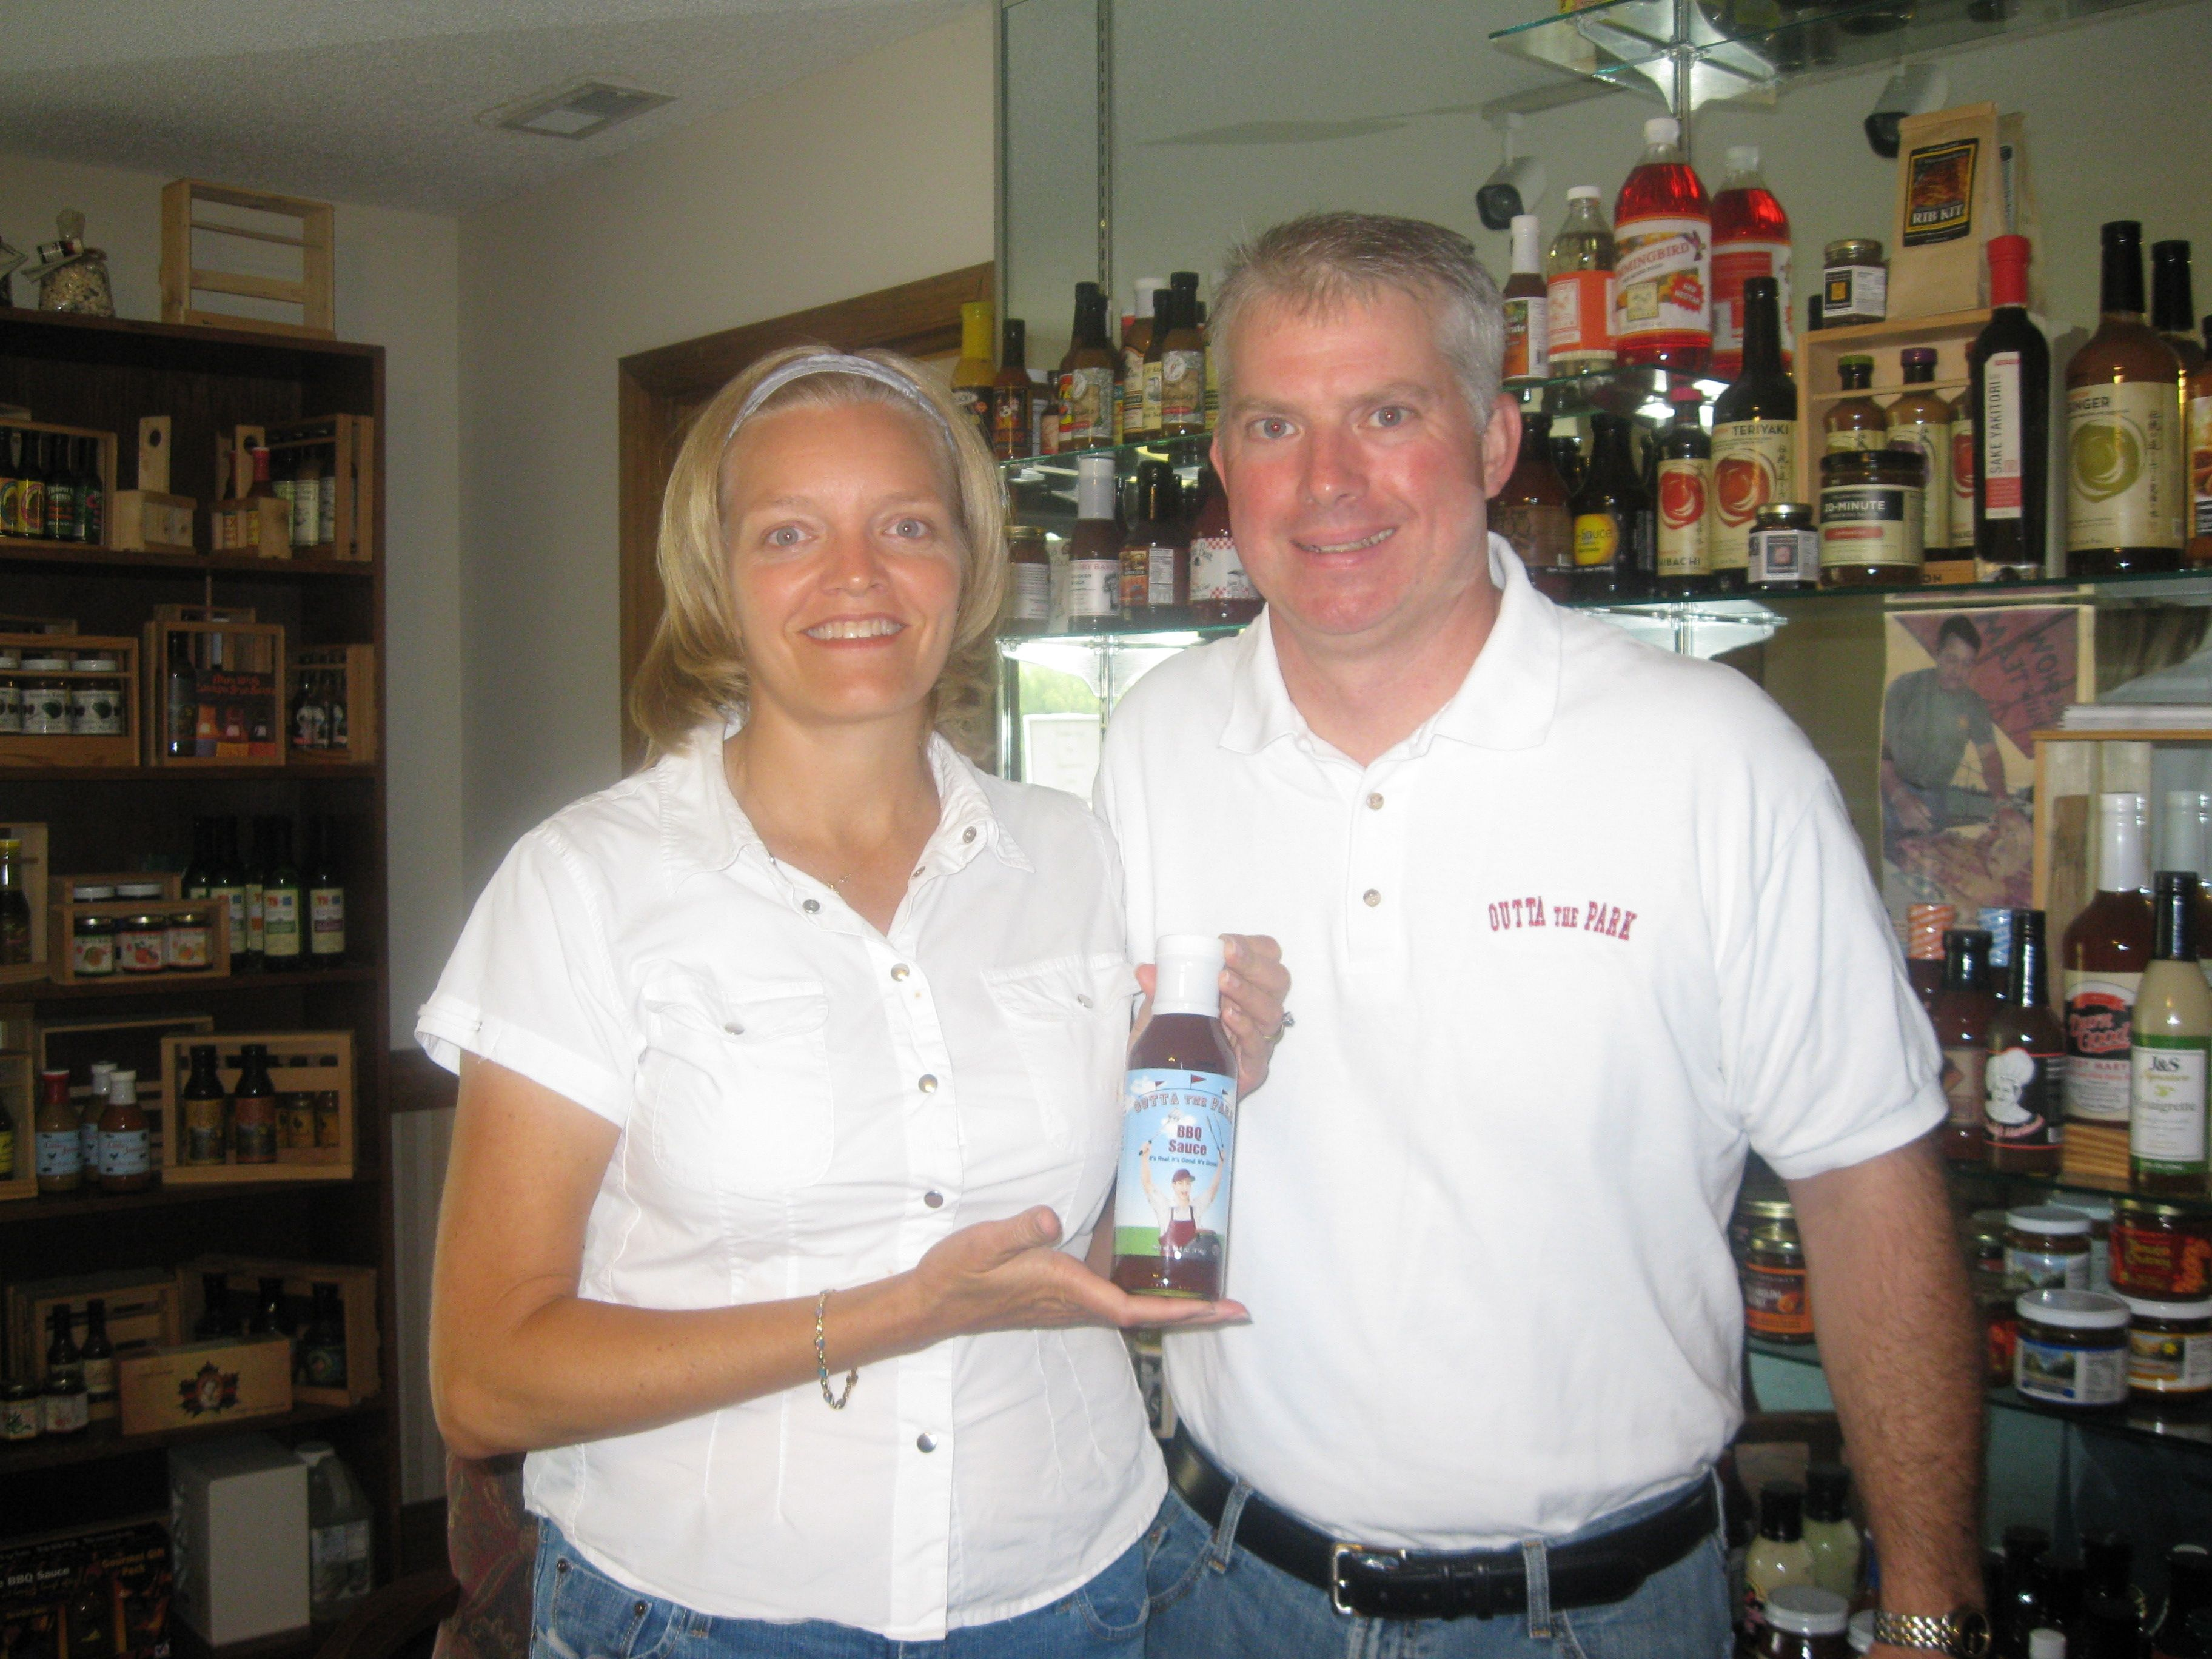 Here we are with the very first bottle of Outta the Park ~ Aug. 2009. Yes, we were nervous!